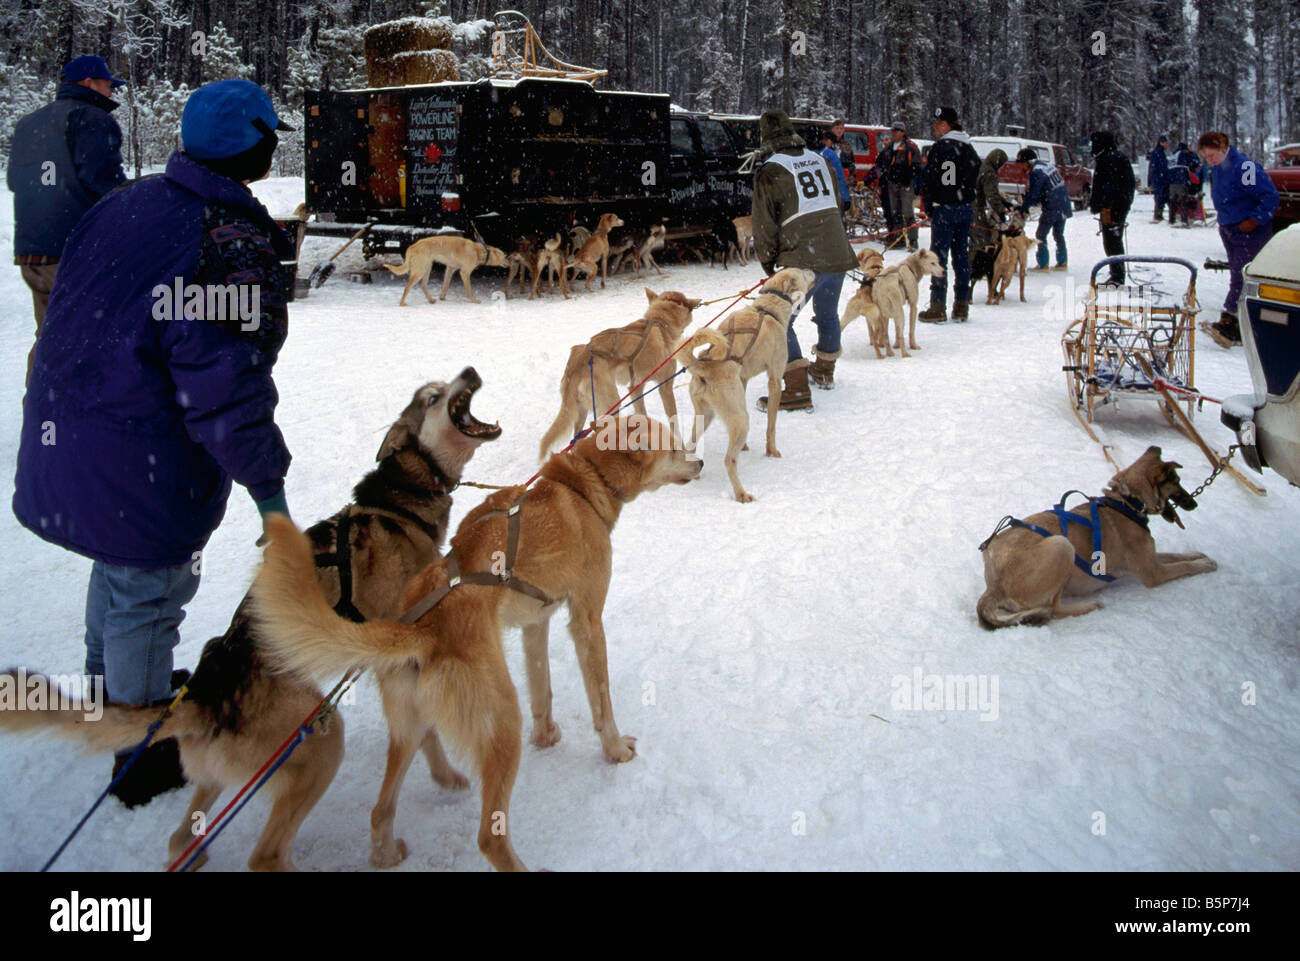 Sled Dog In Kennel Stock Photos Images Snow Hd Wiring Harness Preparing Dogs At The International Race Near Falkland Okanagan Region Of